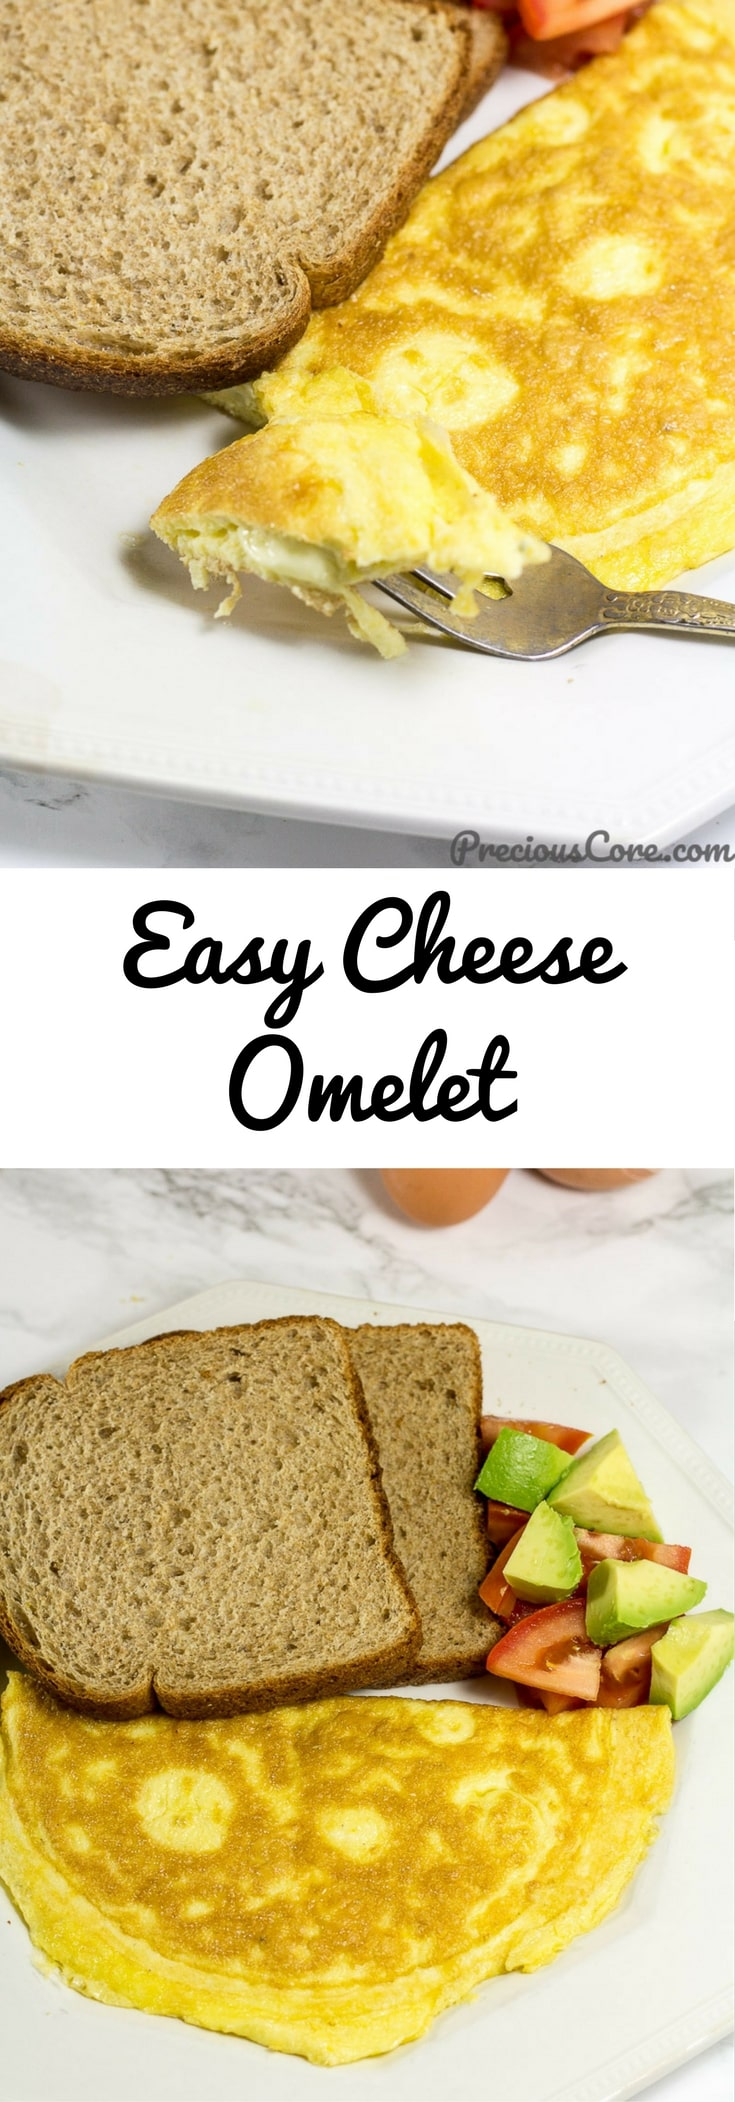 Here is how to make an omelet with cheese. This easy cheese omelet is the perfect breakfast recipe. I love serving it with whole wheat bread with some sliced tomatoes and avocado. So good! Get the recipe on Precious Core. #Cheese #Breakfast #Omelette #Omelet #Ad